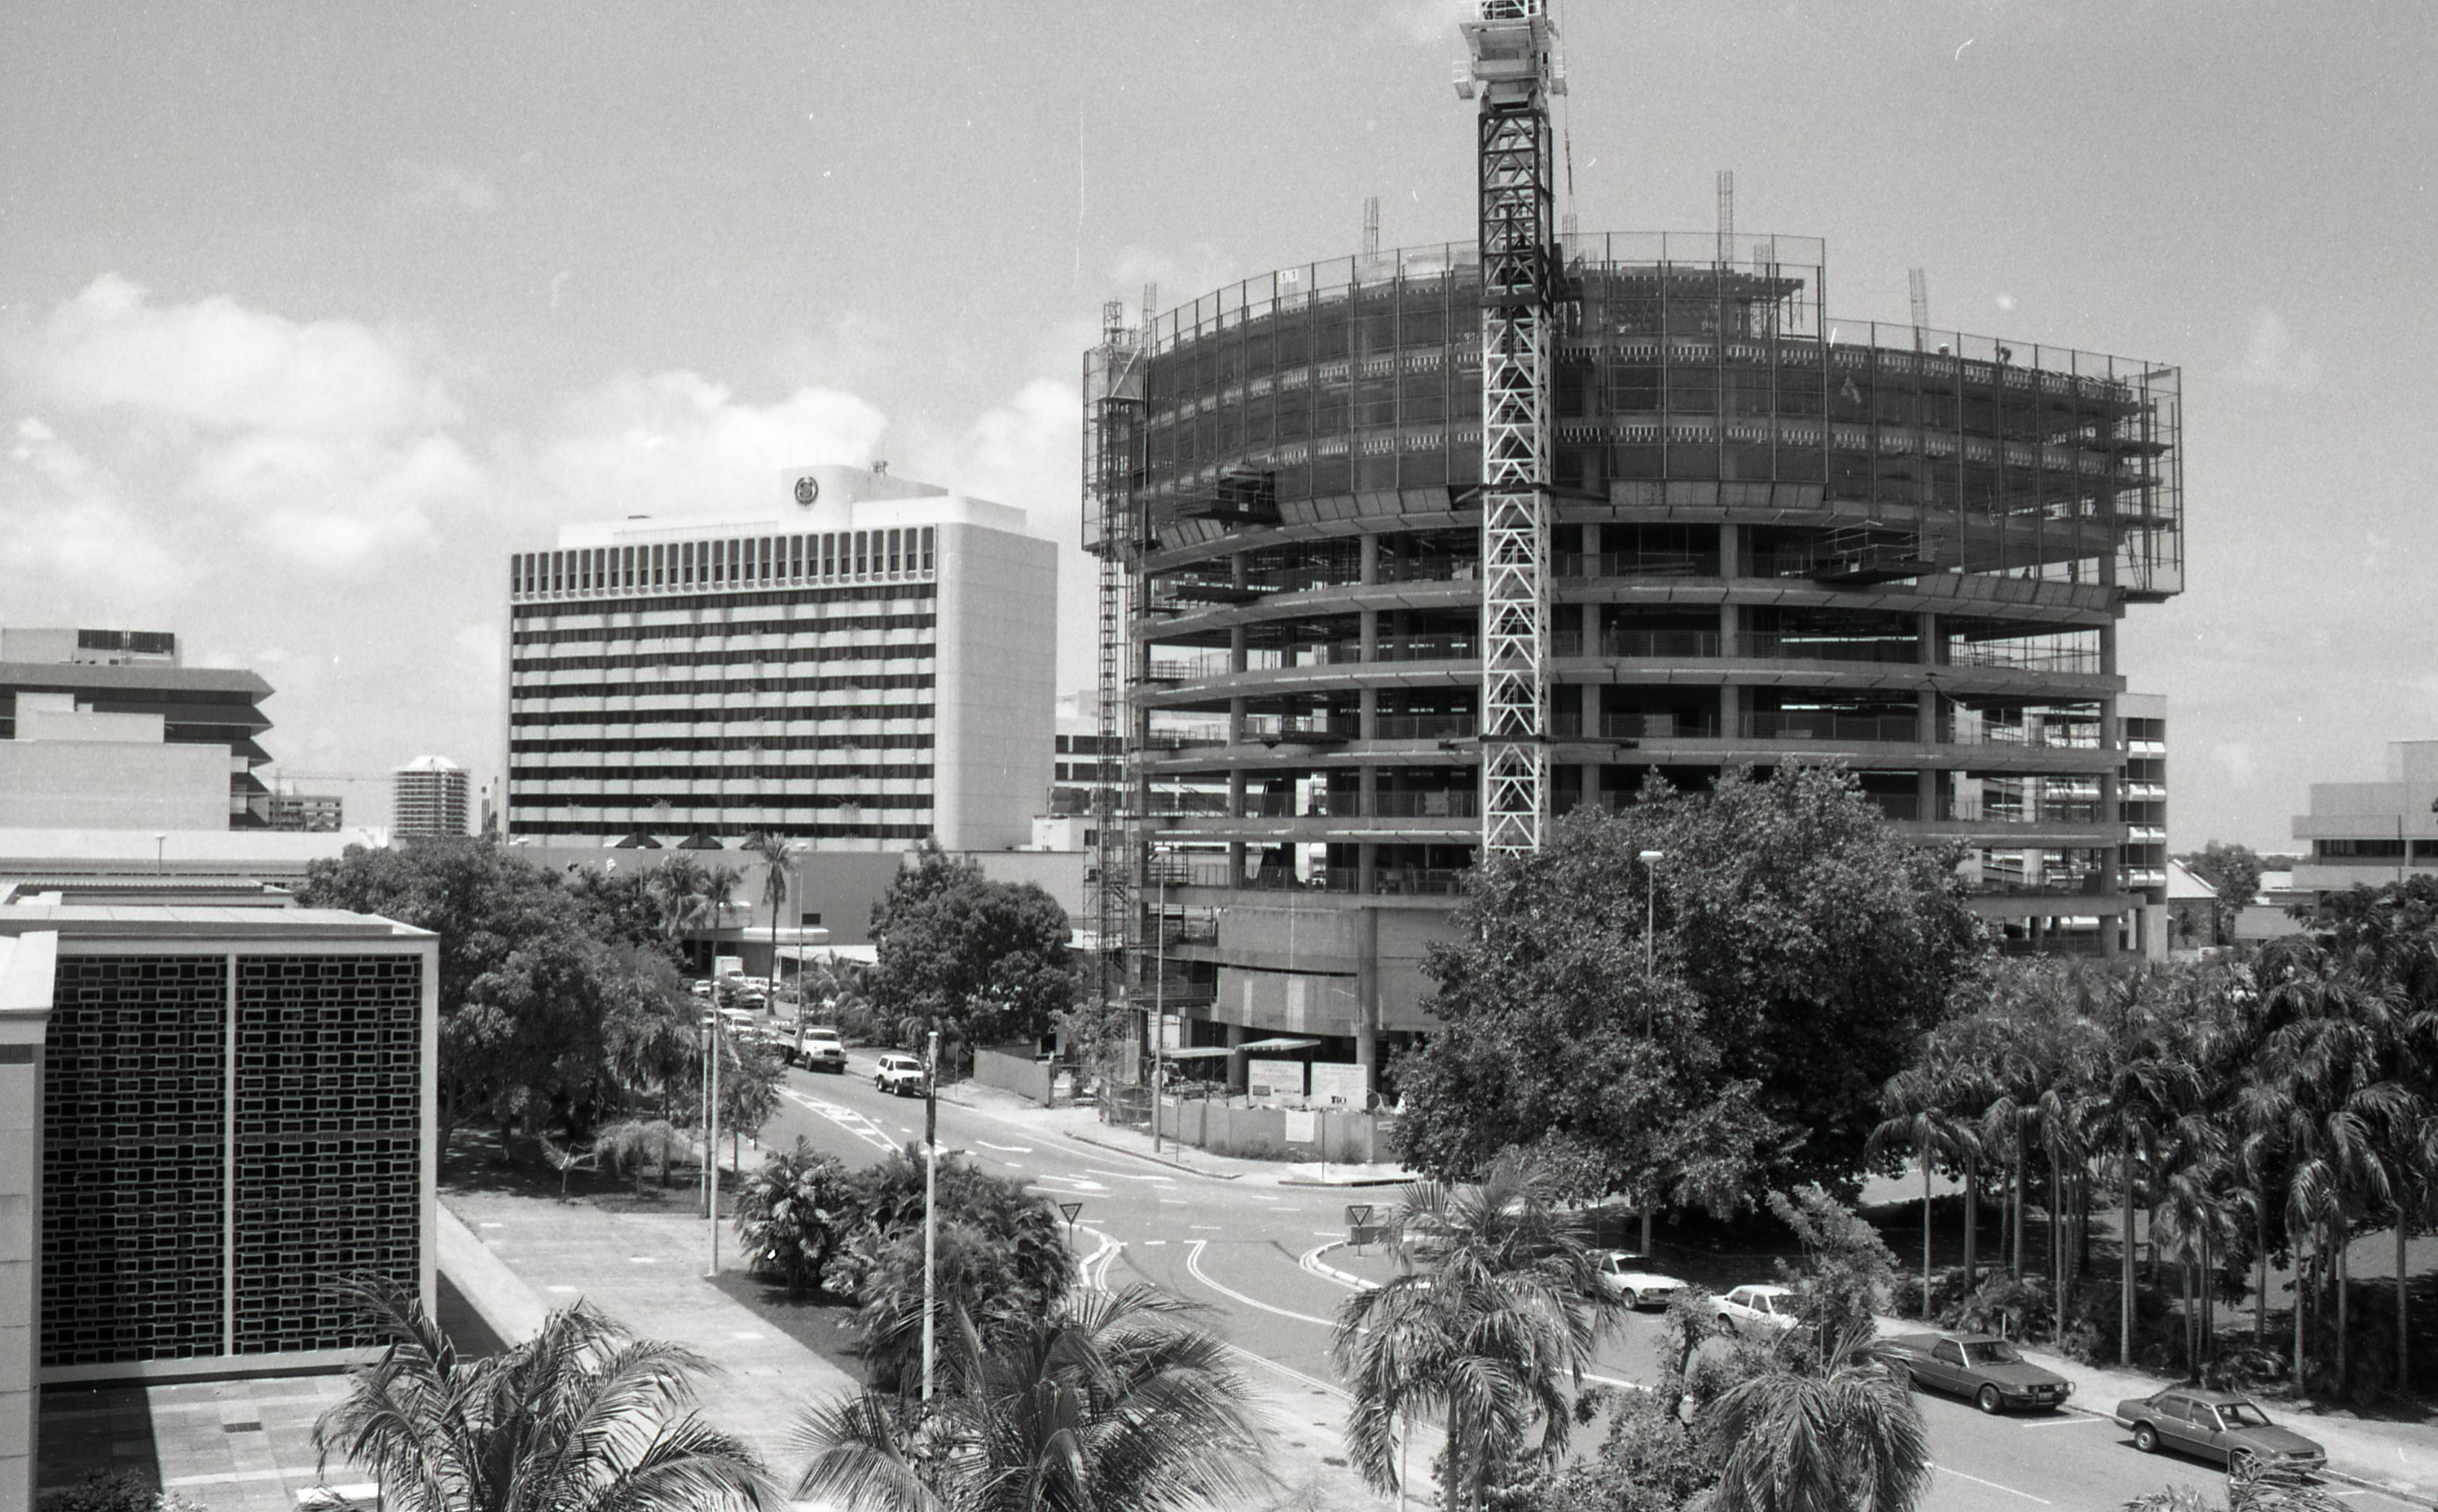 Building construction, corner of Mitchell and Bennett Streets Darwin, 4 January 1989<br />Image courtesy of Library & Archives NT,  Department of the Chief Minister, NTRS 3823 P1, Box 11, BW2784, Image 19